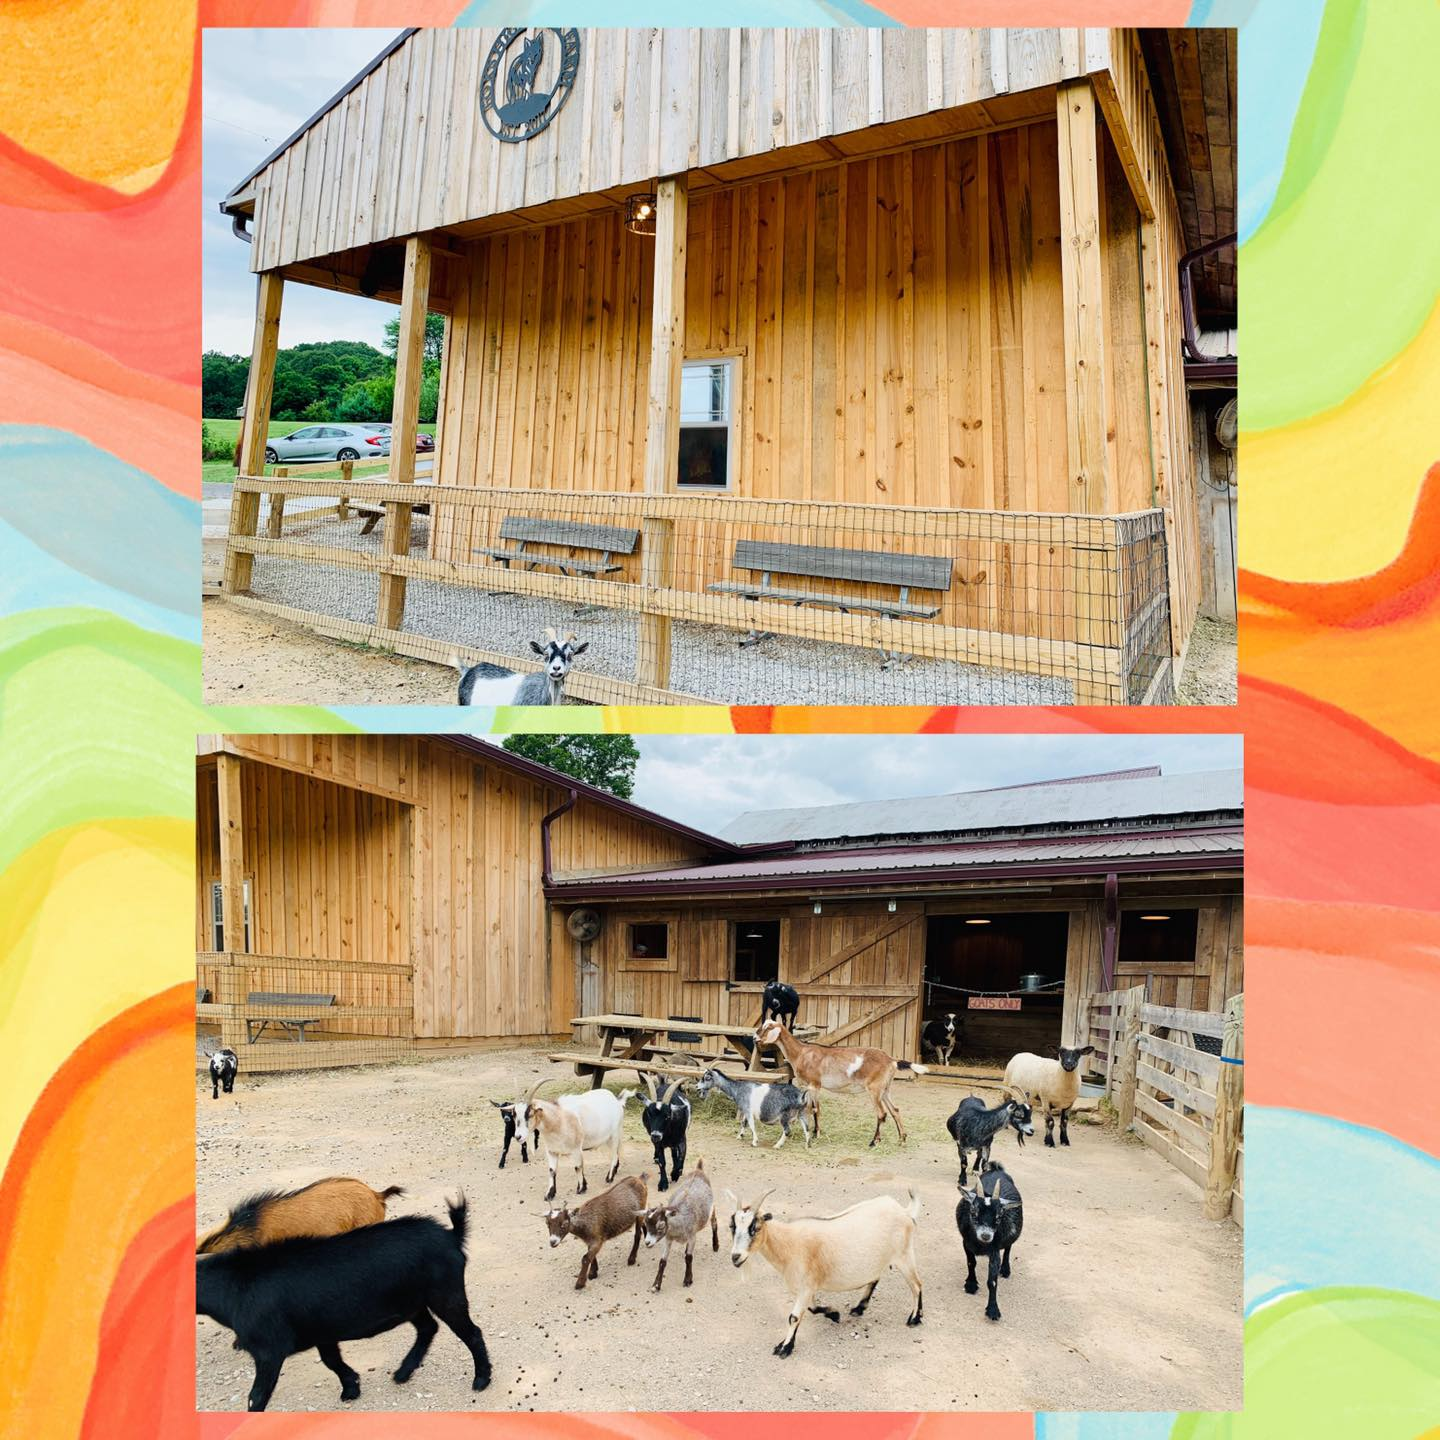 petting zoo area with open pen area